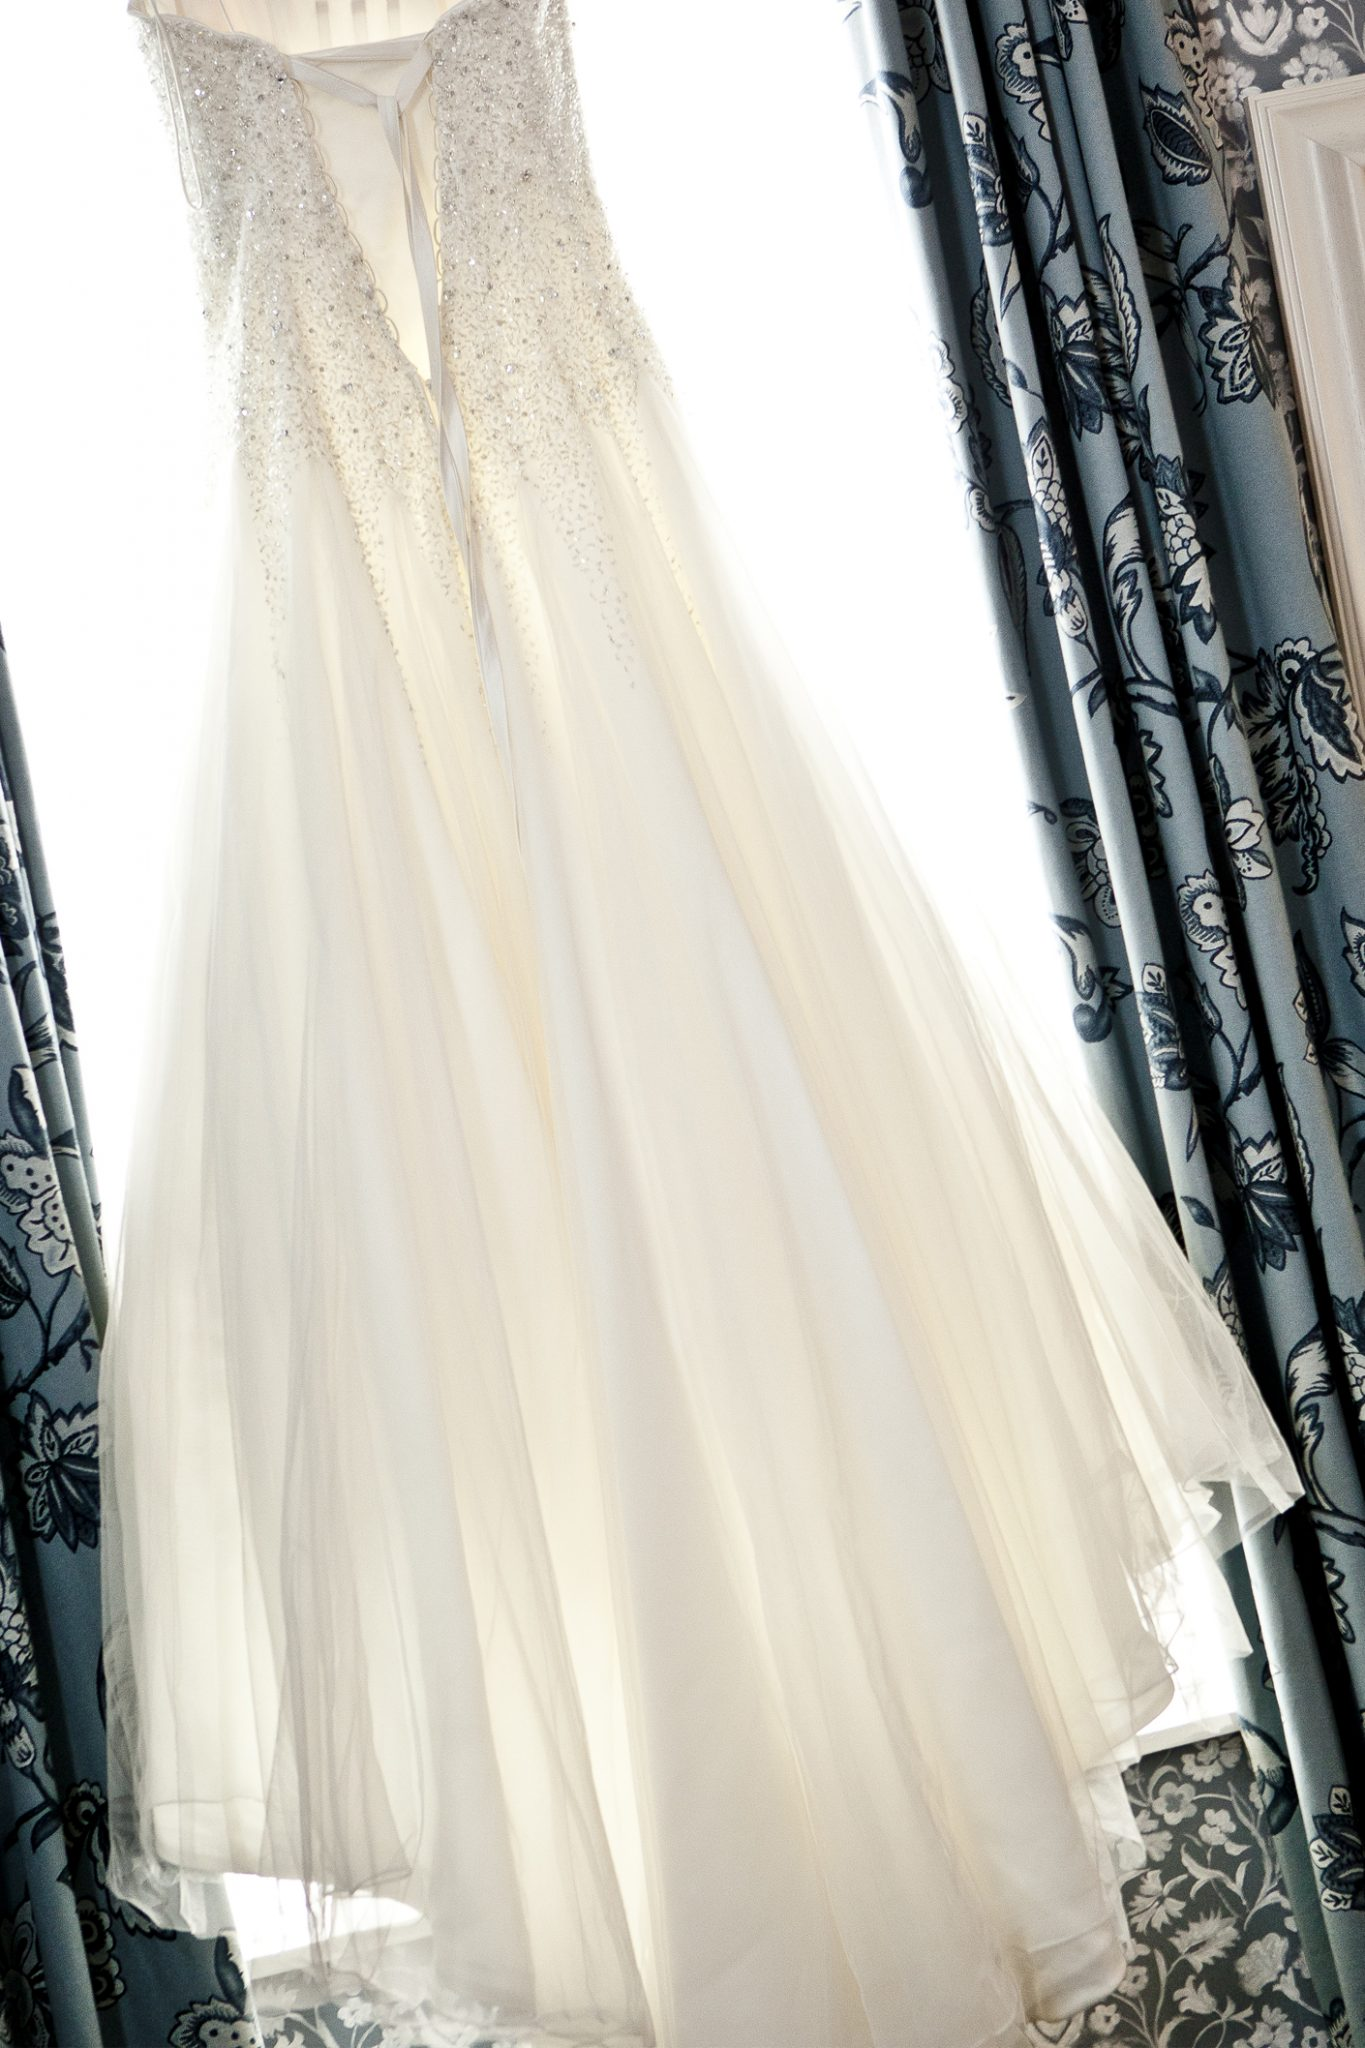 photography-of-the-wedding-dress-at-mottram-hall-cheshire